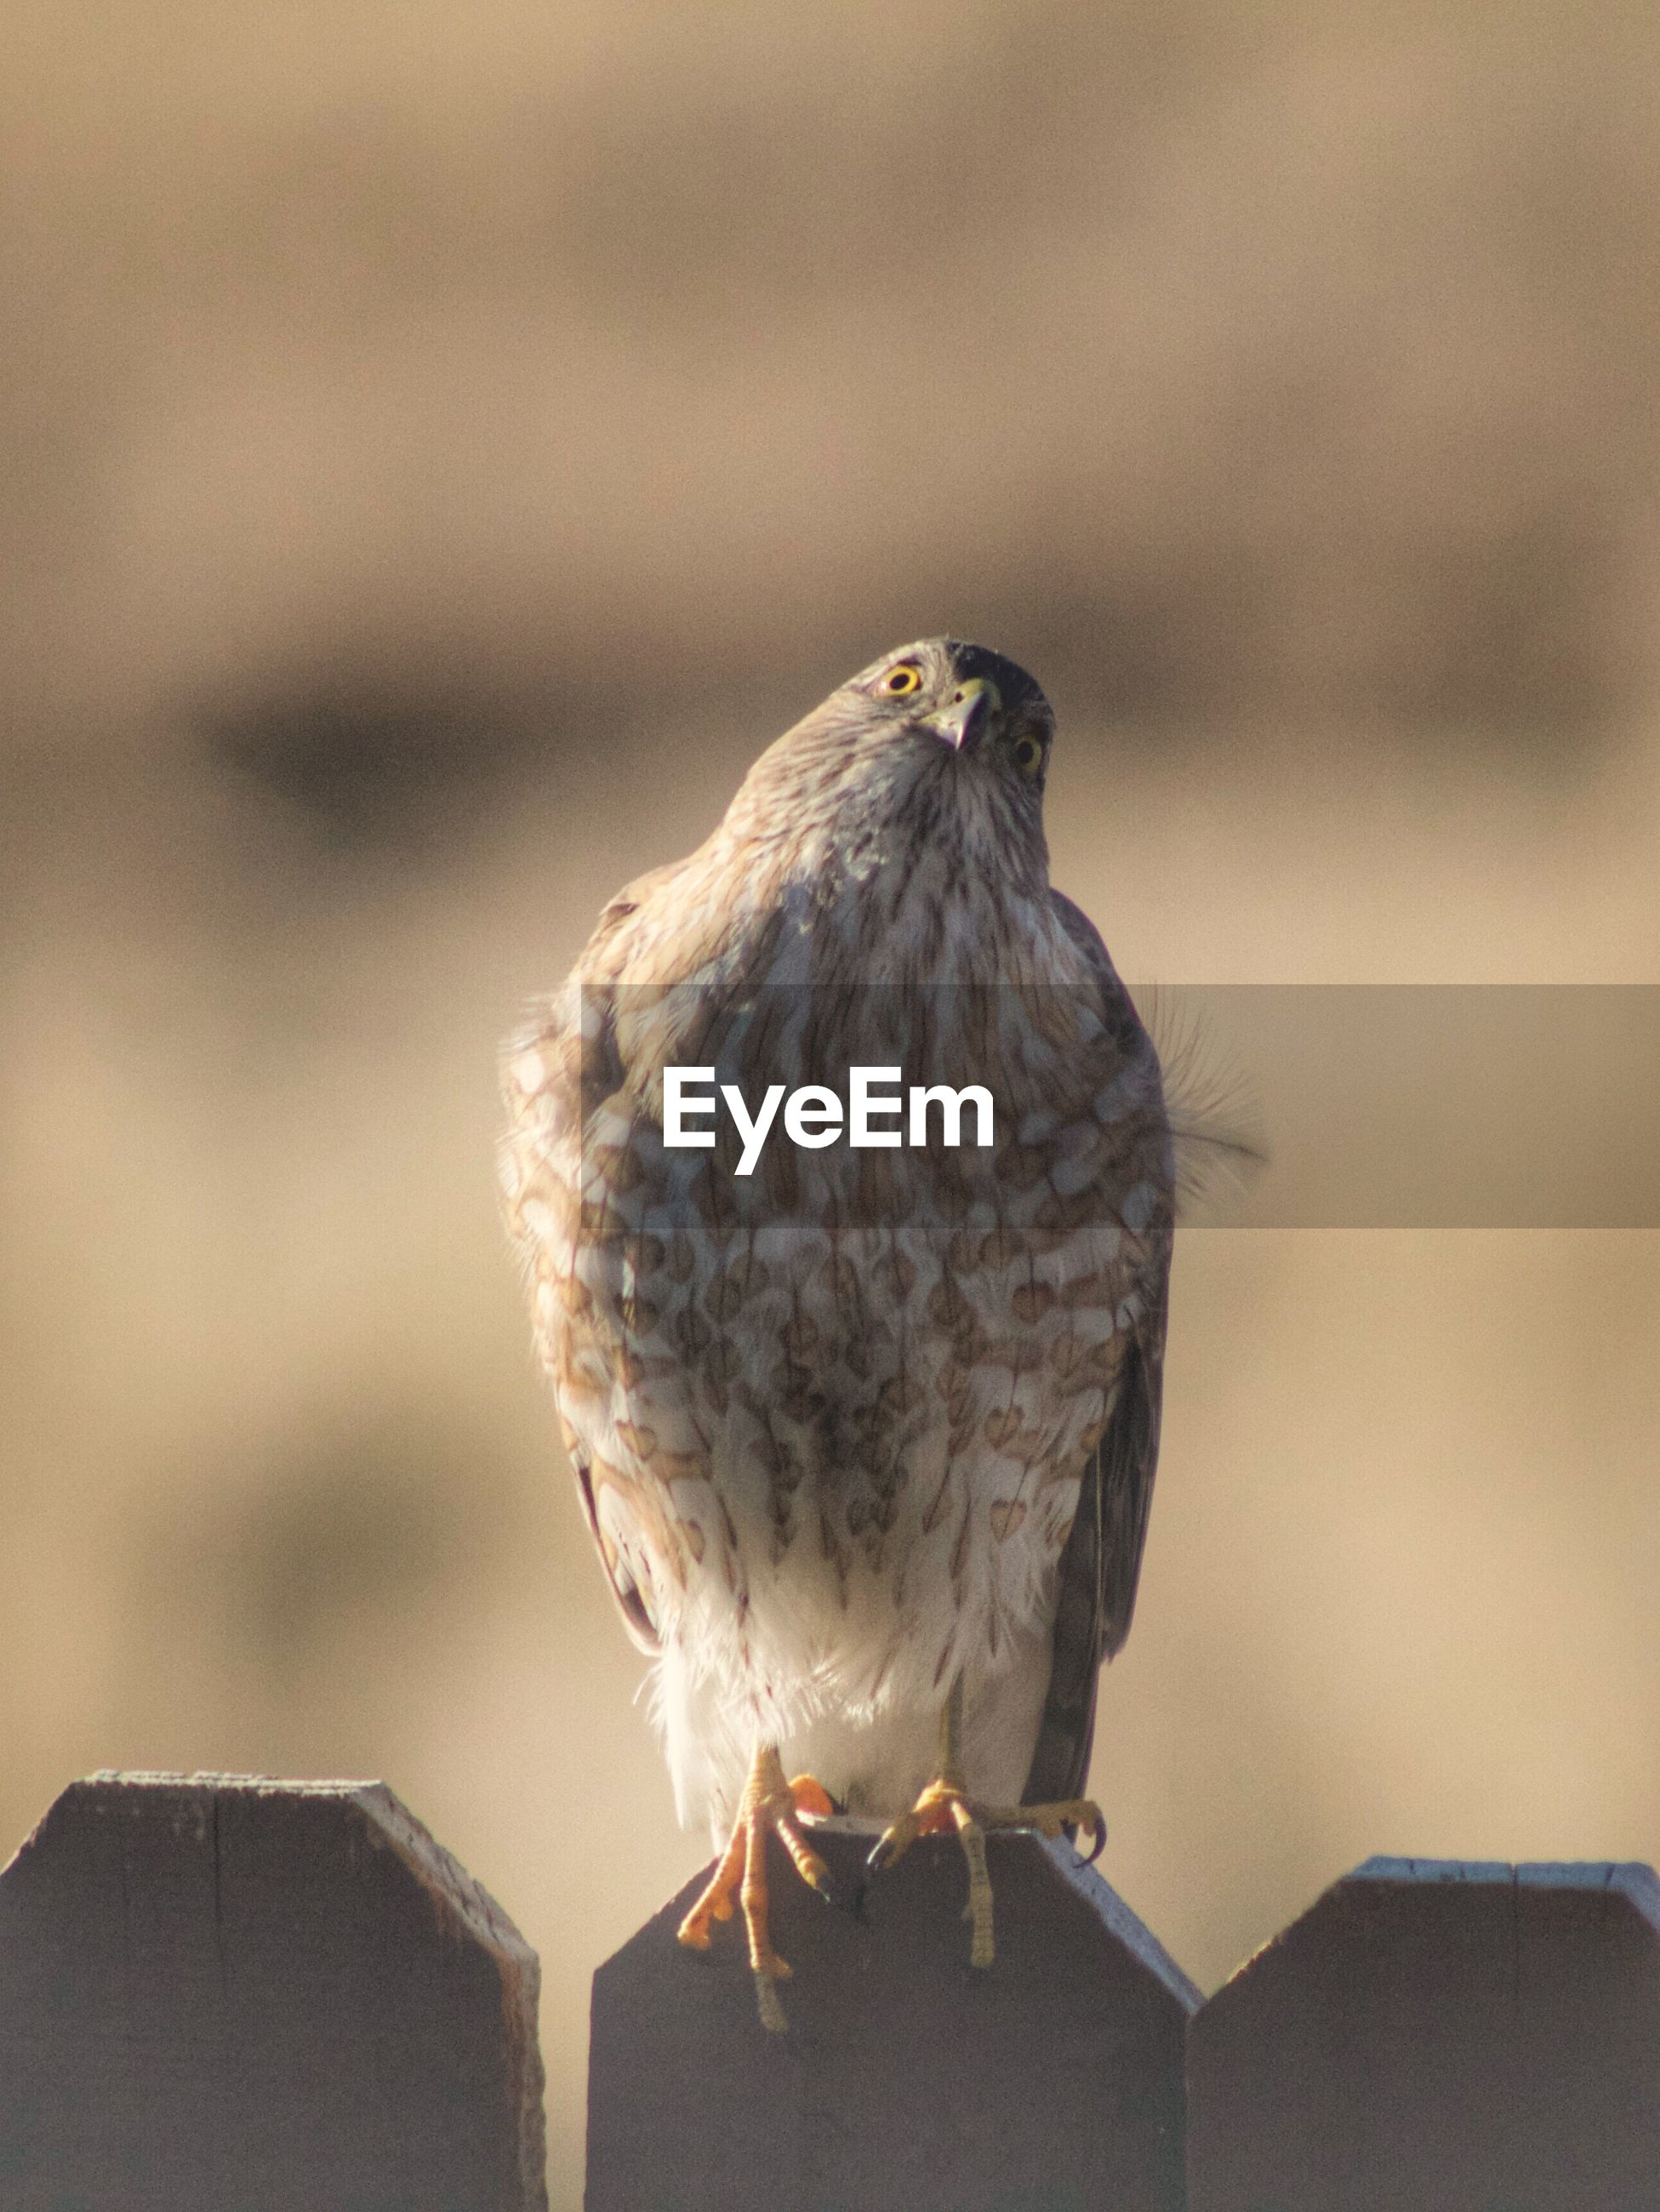 bird, vertebrate, animal wildlife, one animal, animals in the wild, perching, focus on foreground, close-up, no people, day, nature, bird of prey, outdoors, roof, wood - material, sunlight, looking